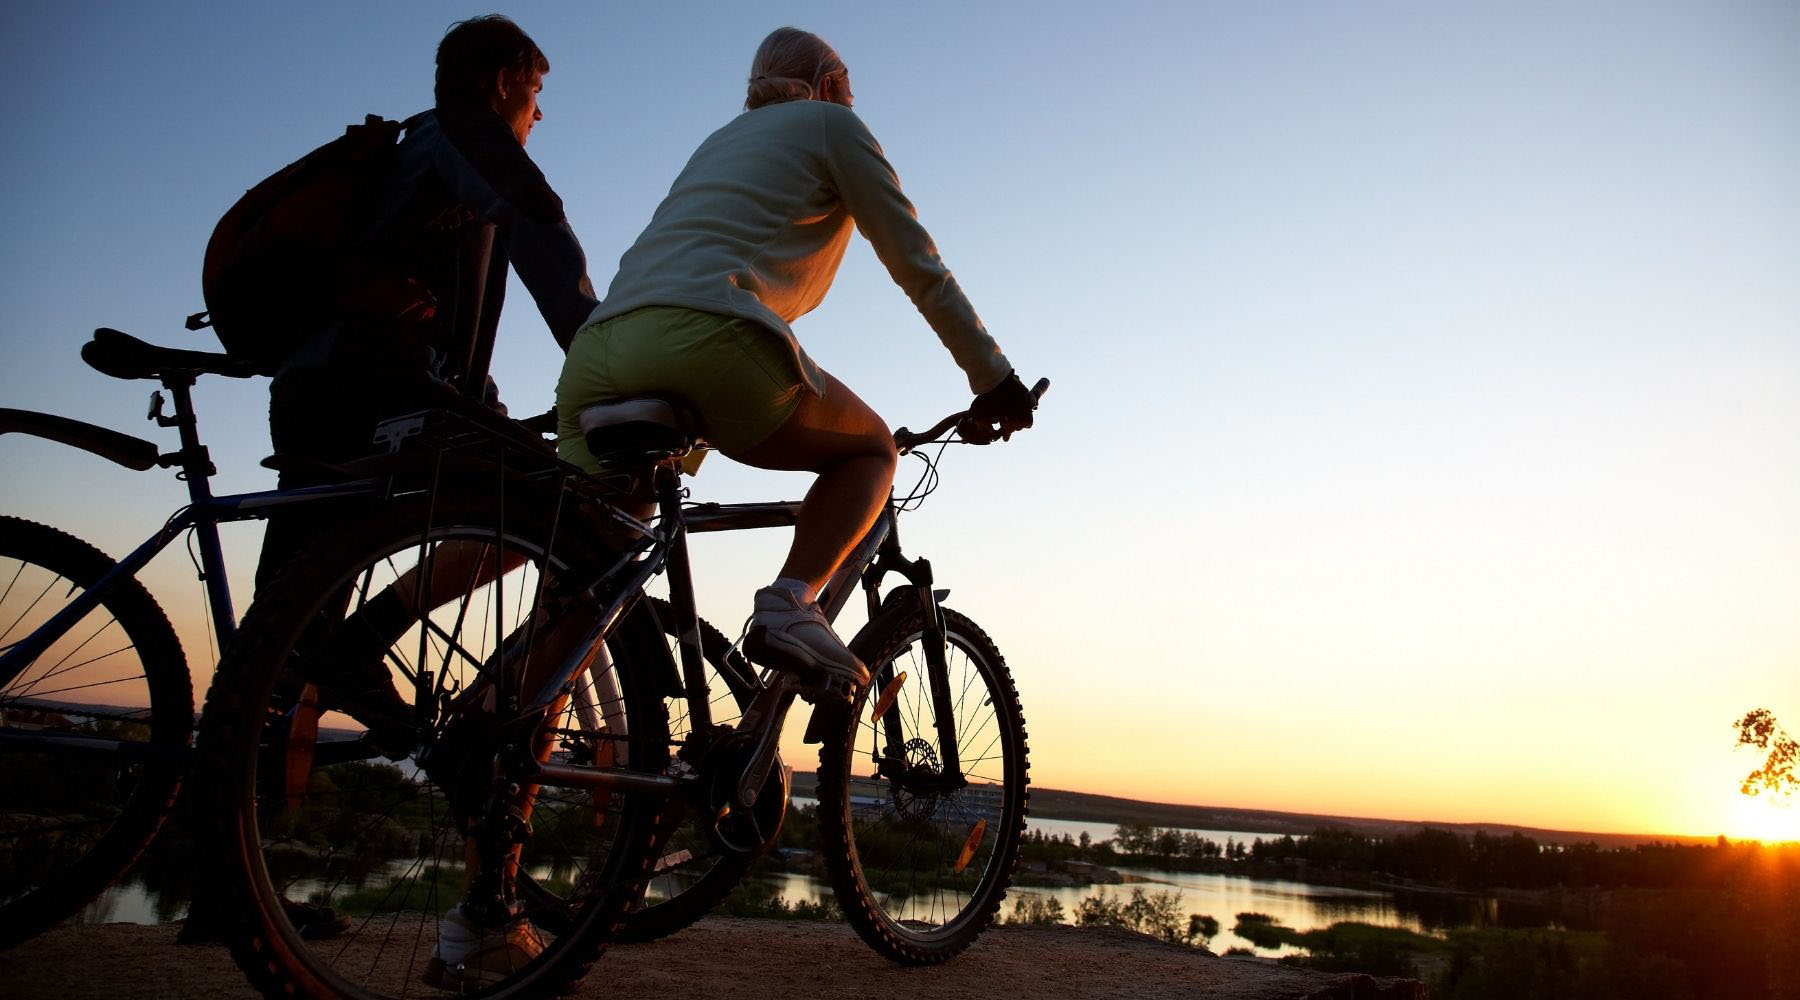 The best excursions for exploring on two wheels